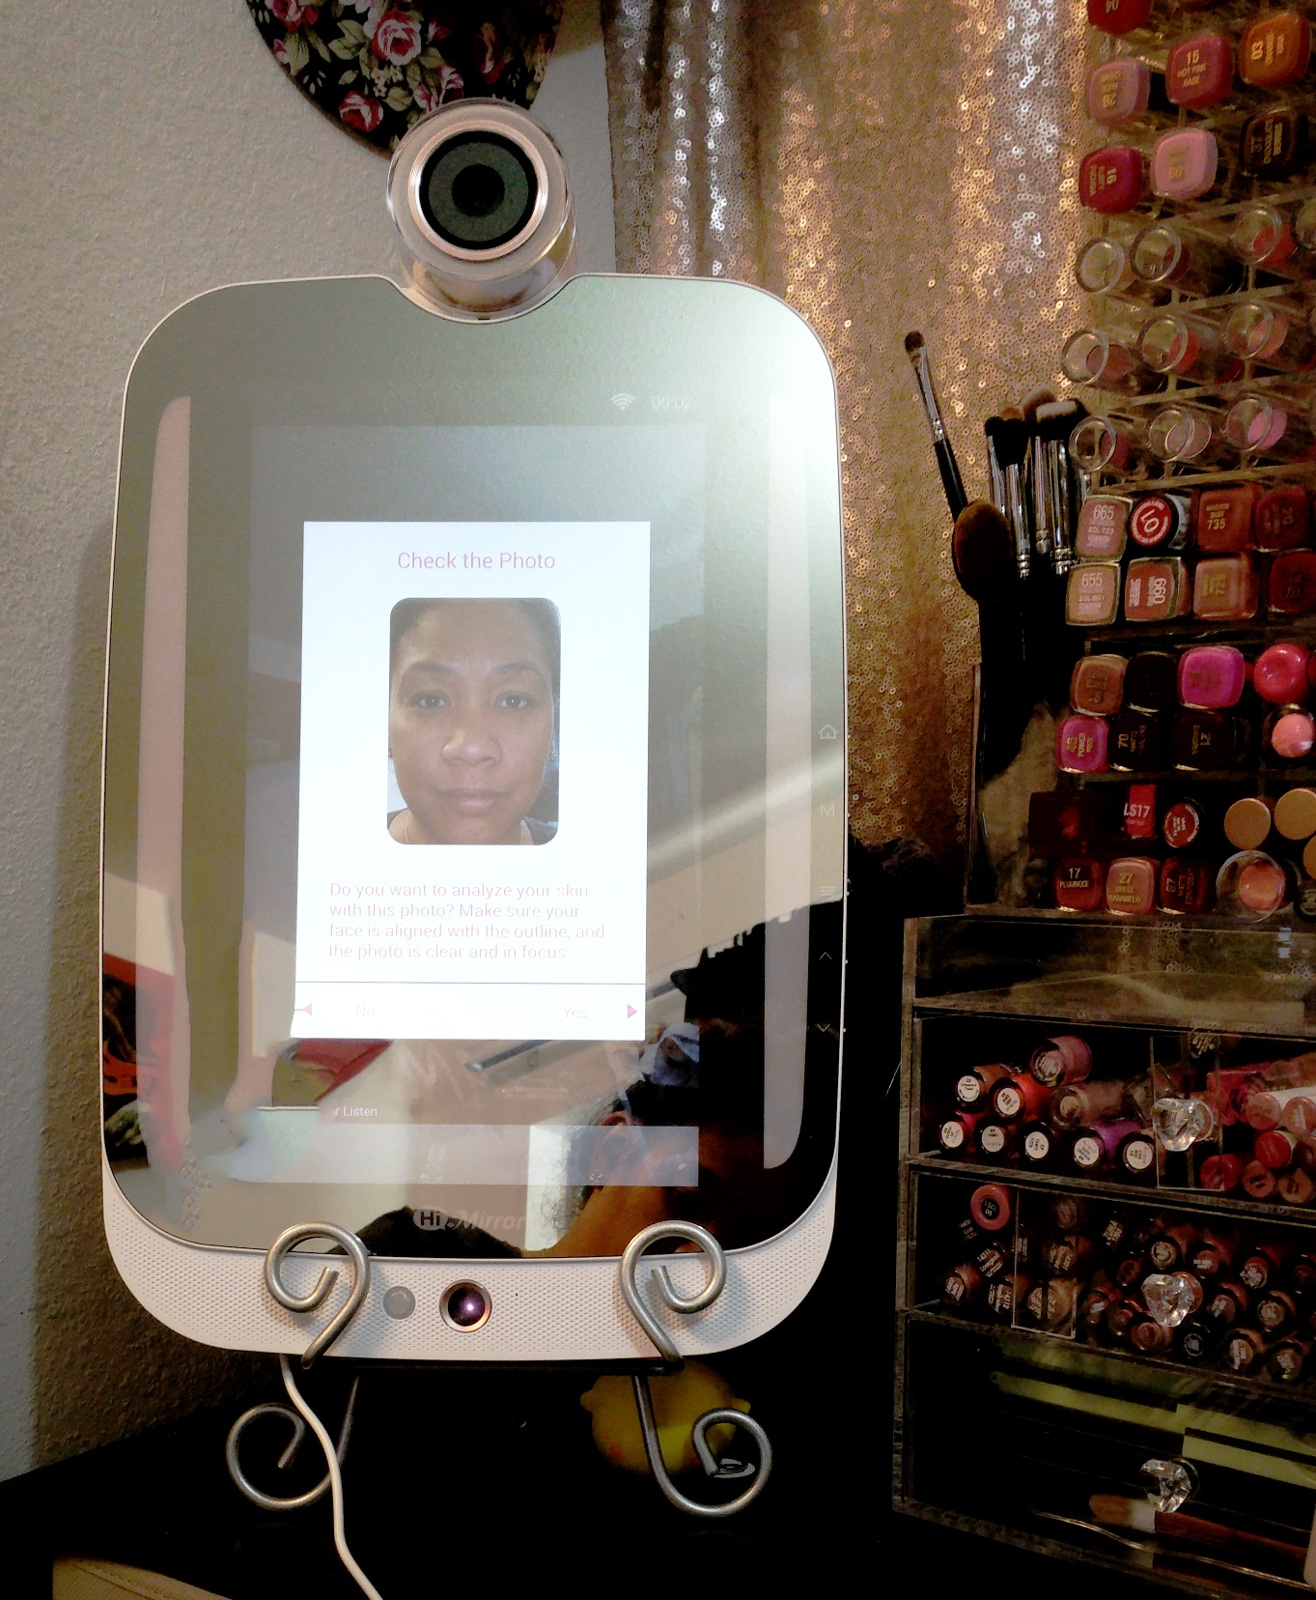 HIMirror Plus, review, beauty, smarter beauty, innovative, beauty goals, personal beauty system, smart beauty mirror, beauty mirror, skin analysis, face recognition, skincare tips, at-home beauty consultant, skin care, skincare, makeup light, beauty review, skincare review, beauty technology,